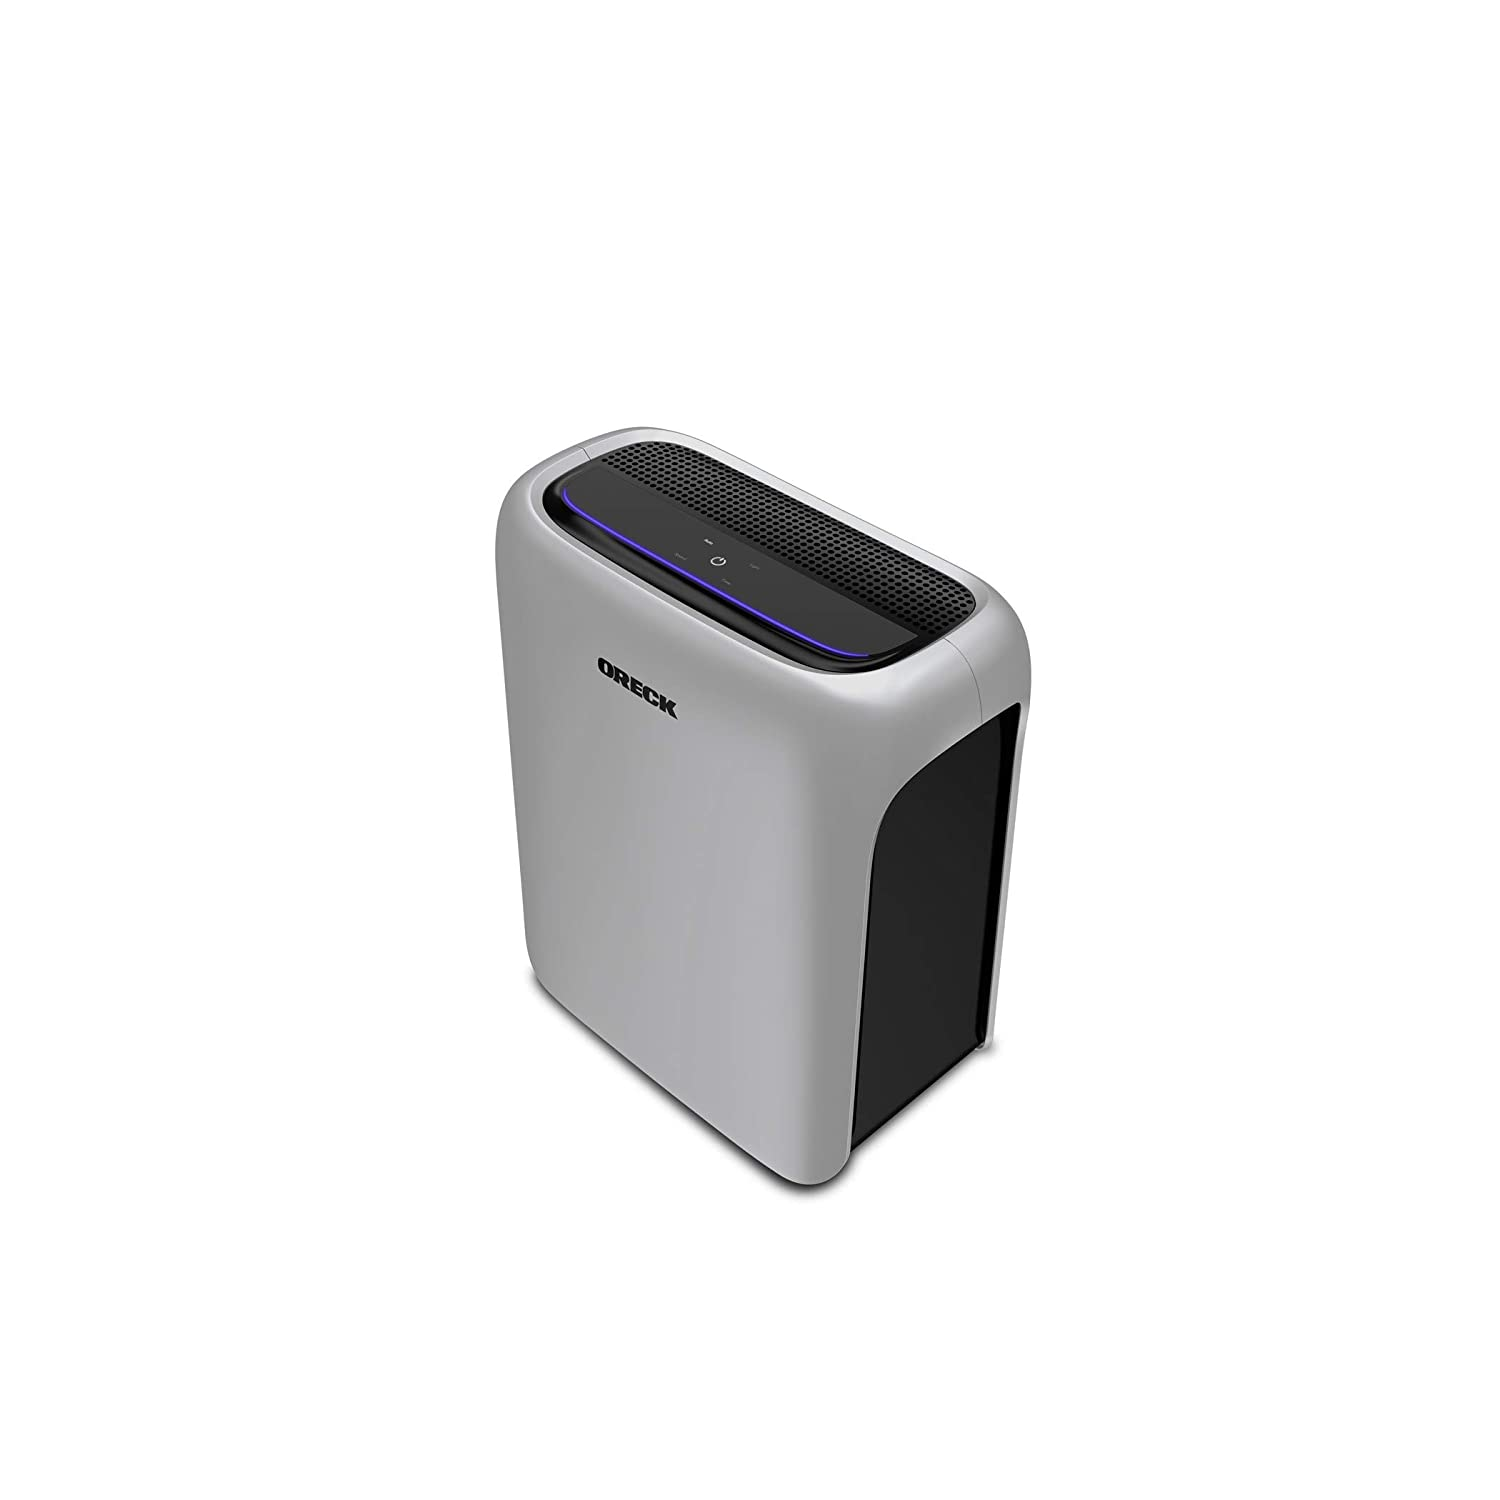 Oreck Air Response Air Purifier – Medium, WK16001